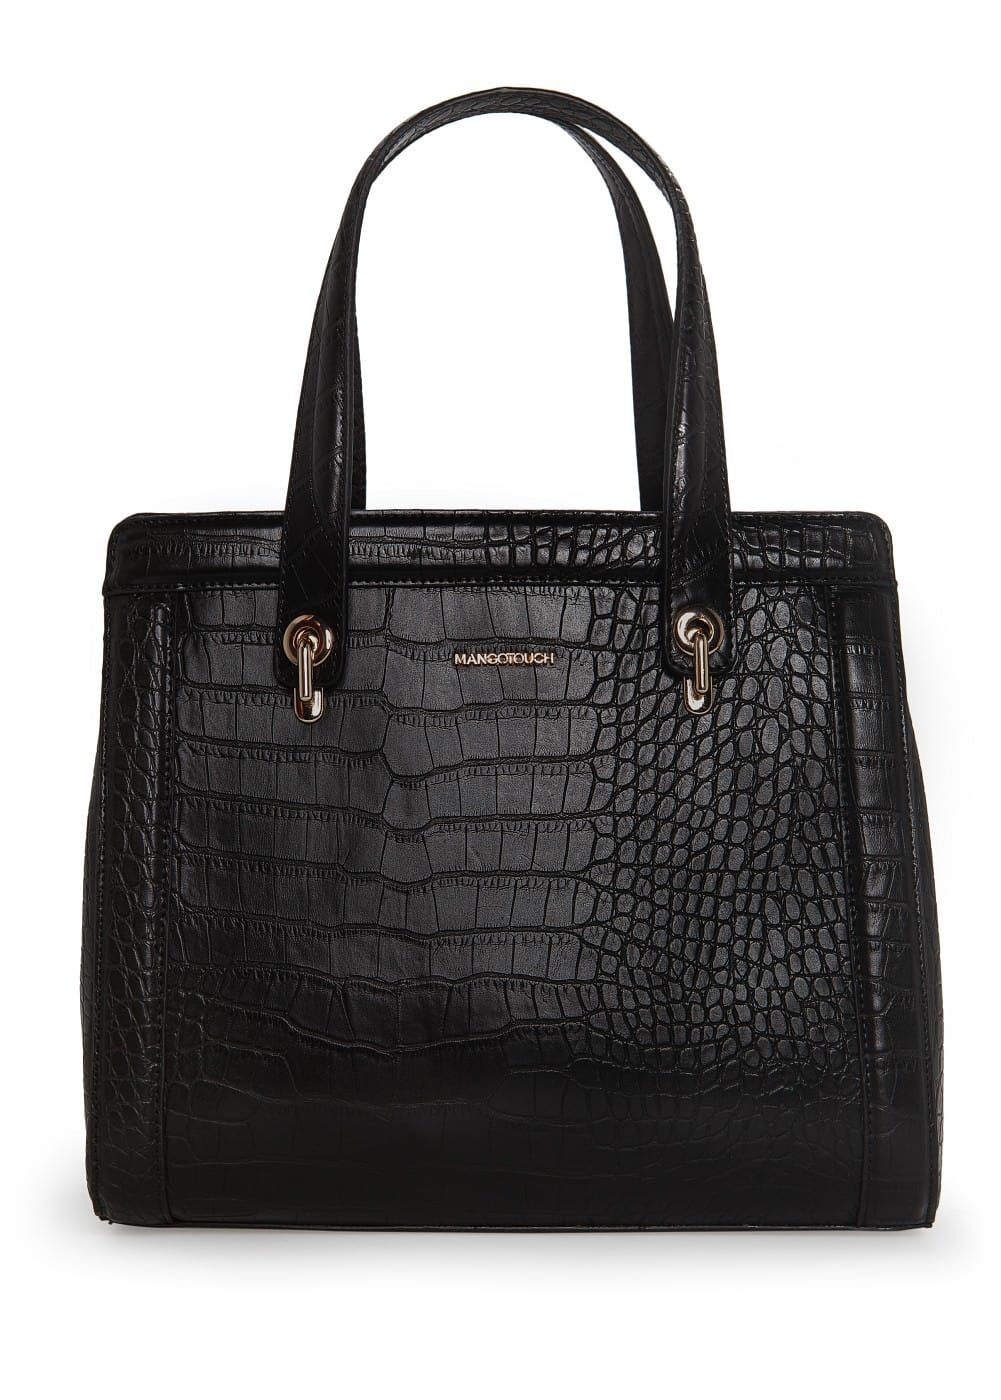 Croc-effect tote bag